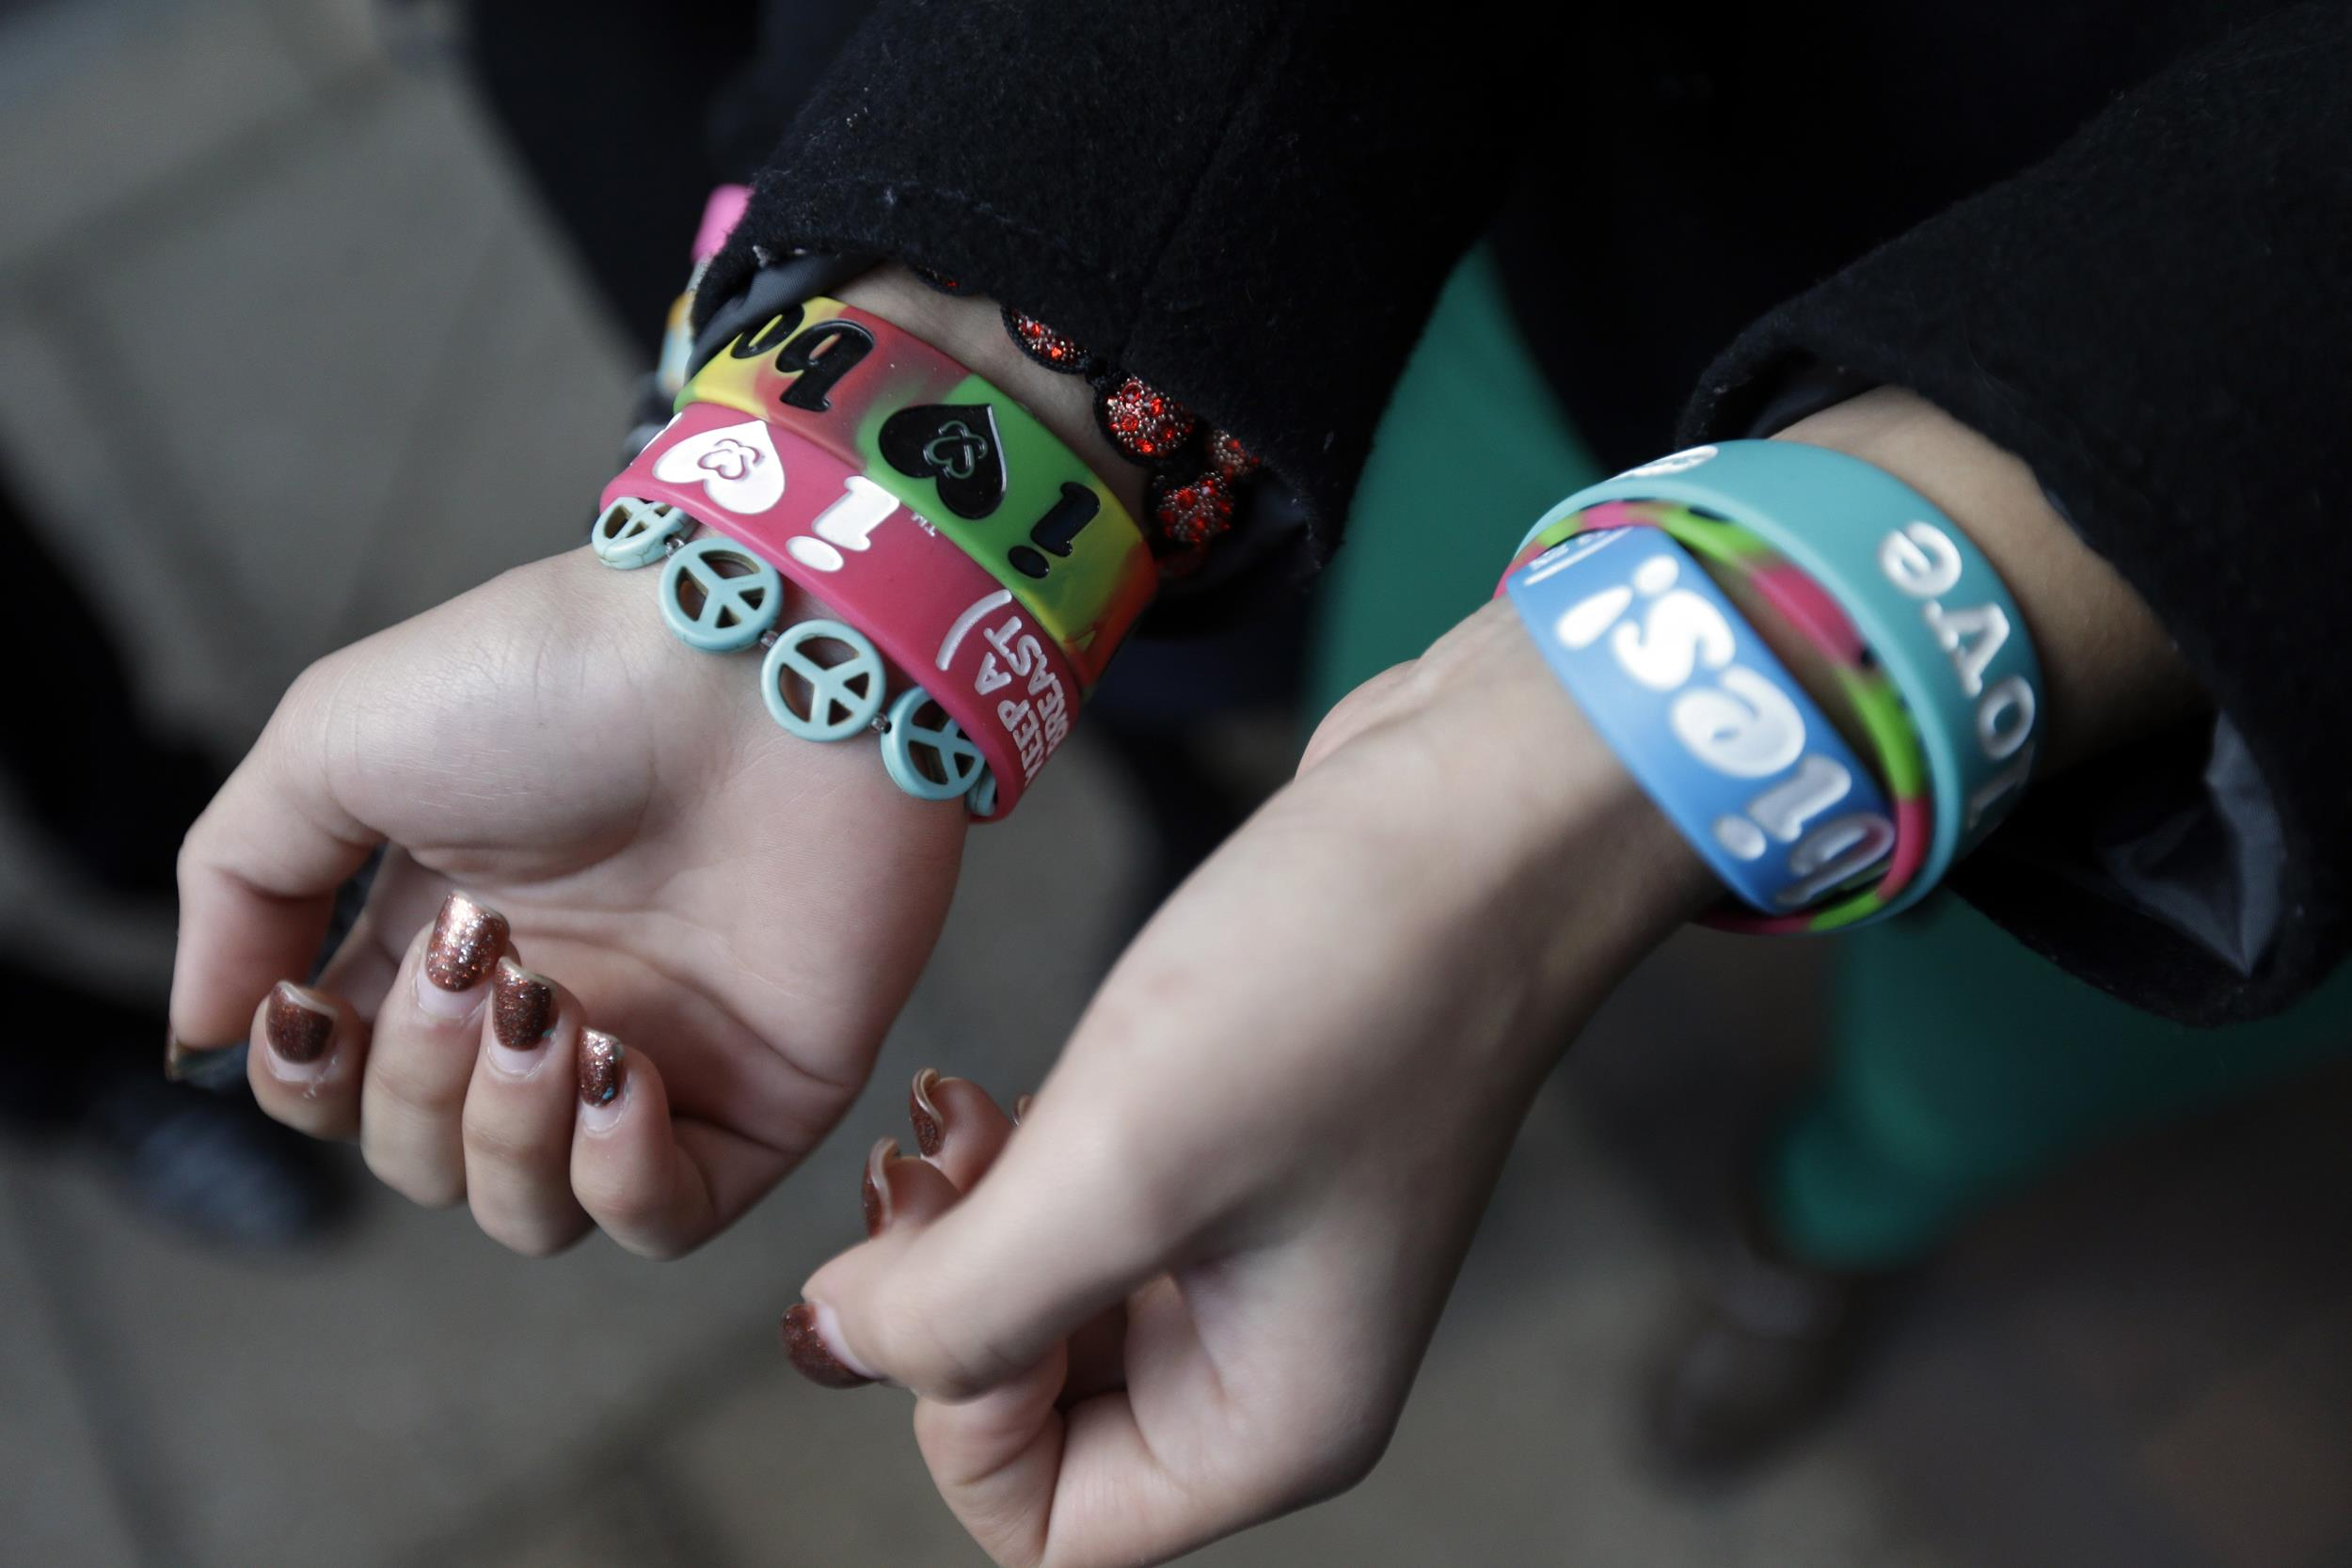 Image: Brianna Hawk, 15, left, and Kayla Martinez, 14, display their bracelets for photographers